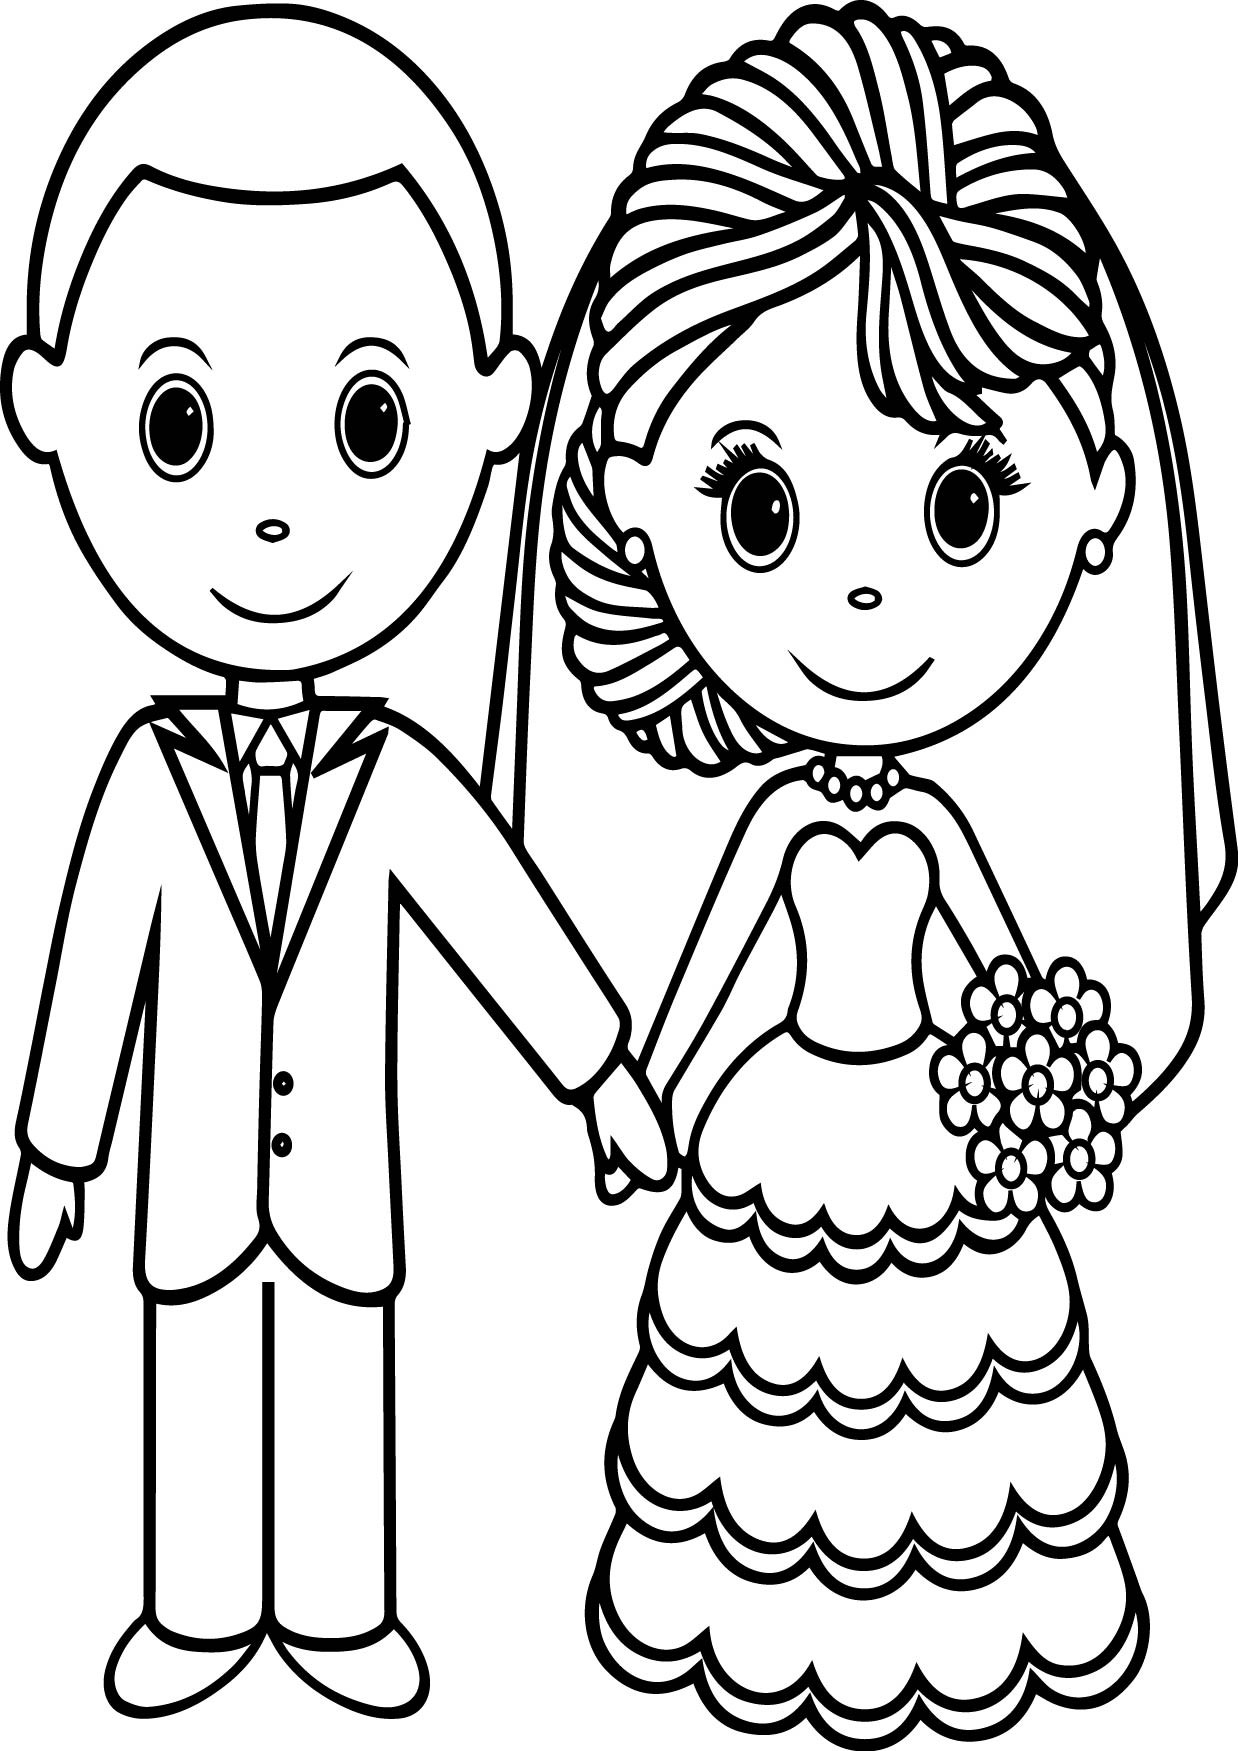 bride and groom pictures to colour in bride and groom coloring pages download free bride and pictures to in bride and colour groom